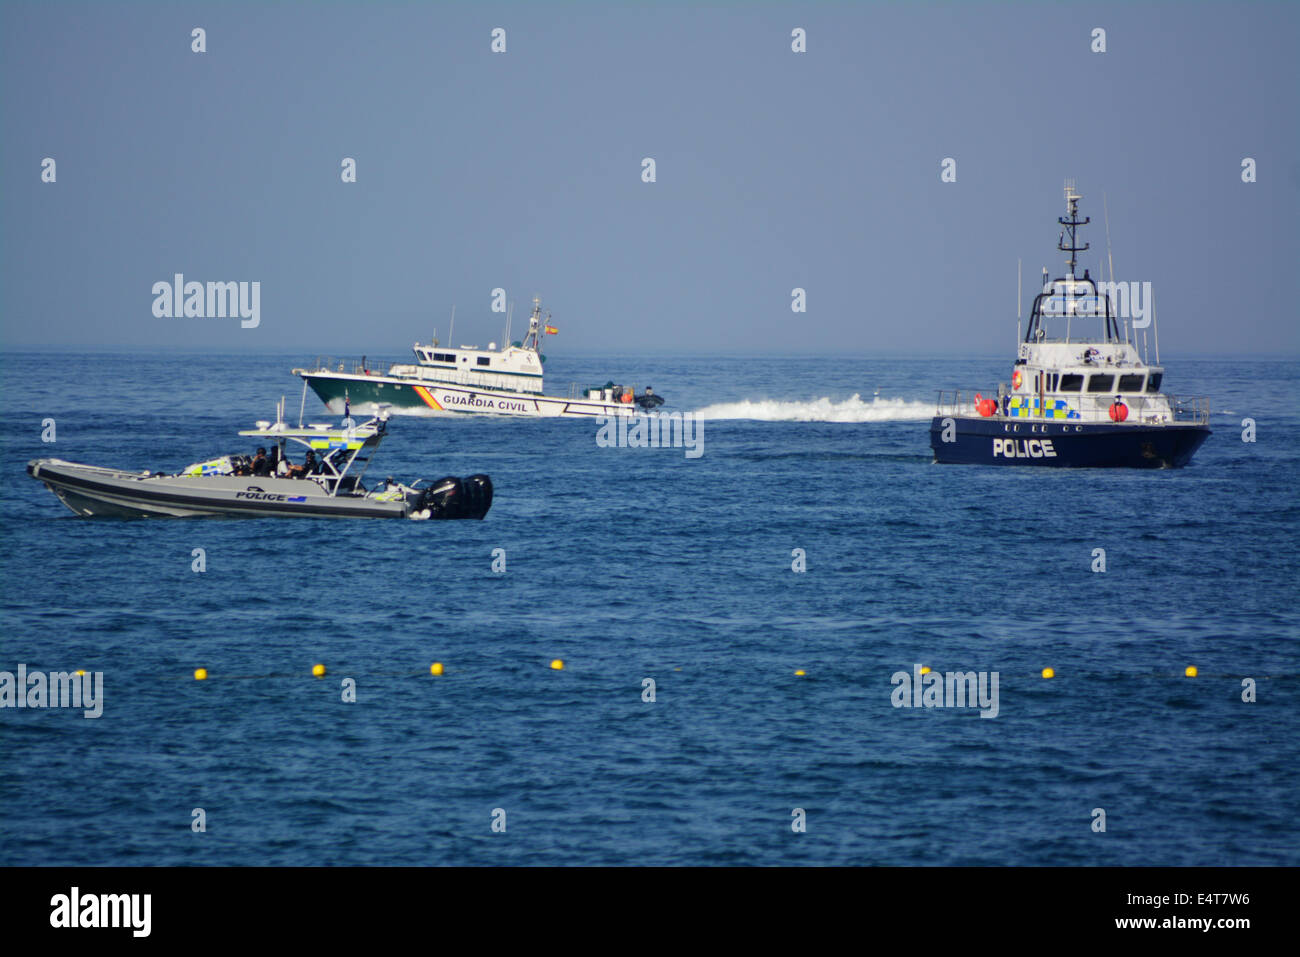 Gibraltar, 16th July 2014 - A Guardia Civil patrol vessel heads north past the east side of Gibraltar watched by - Stock Image